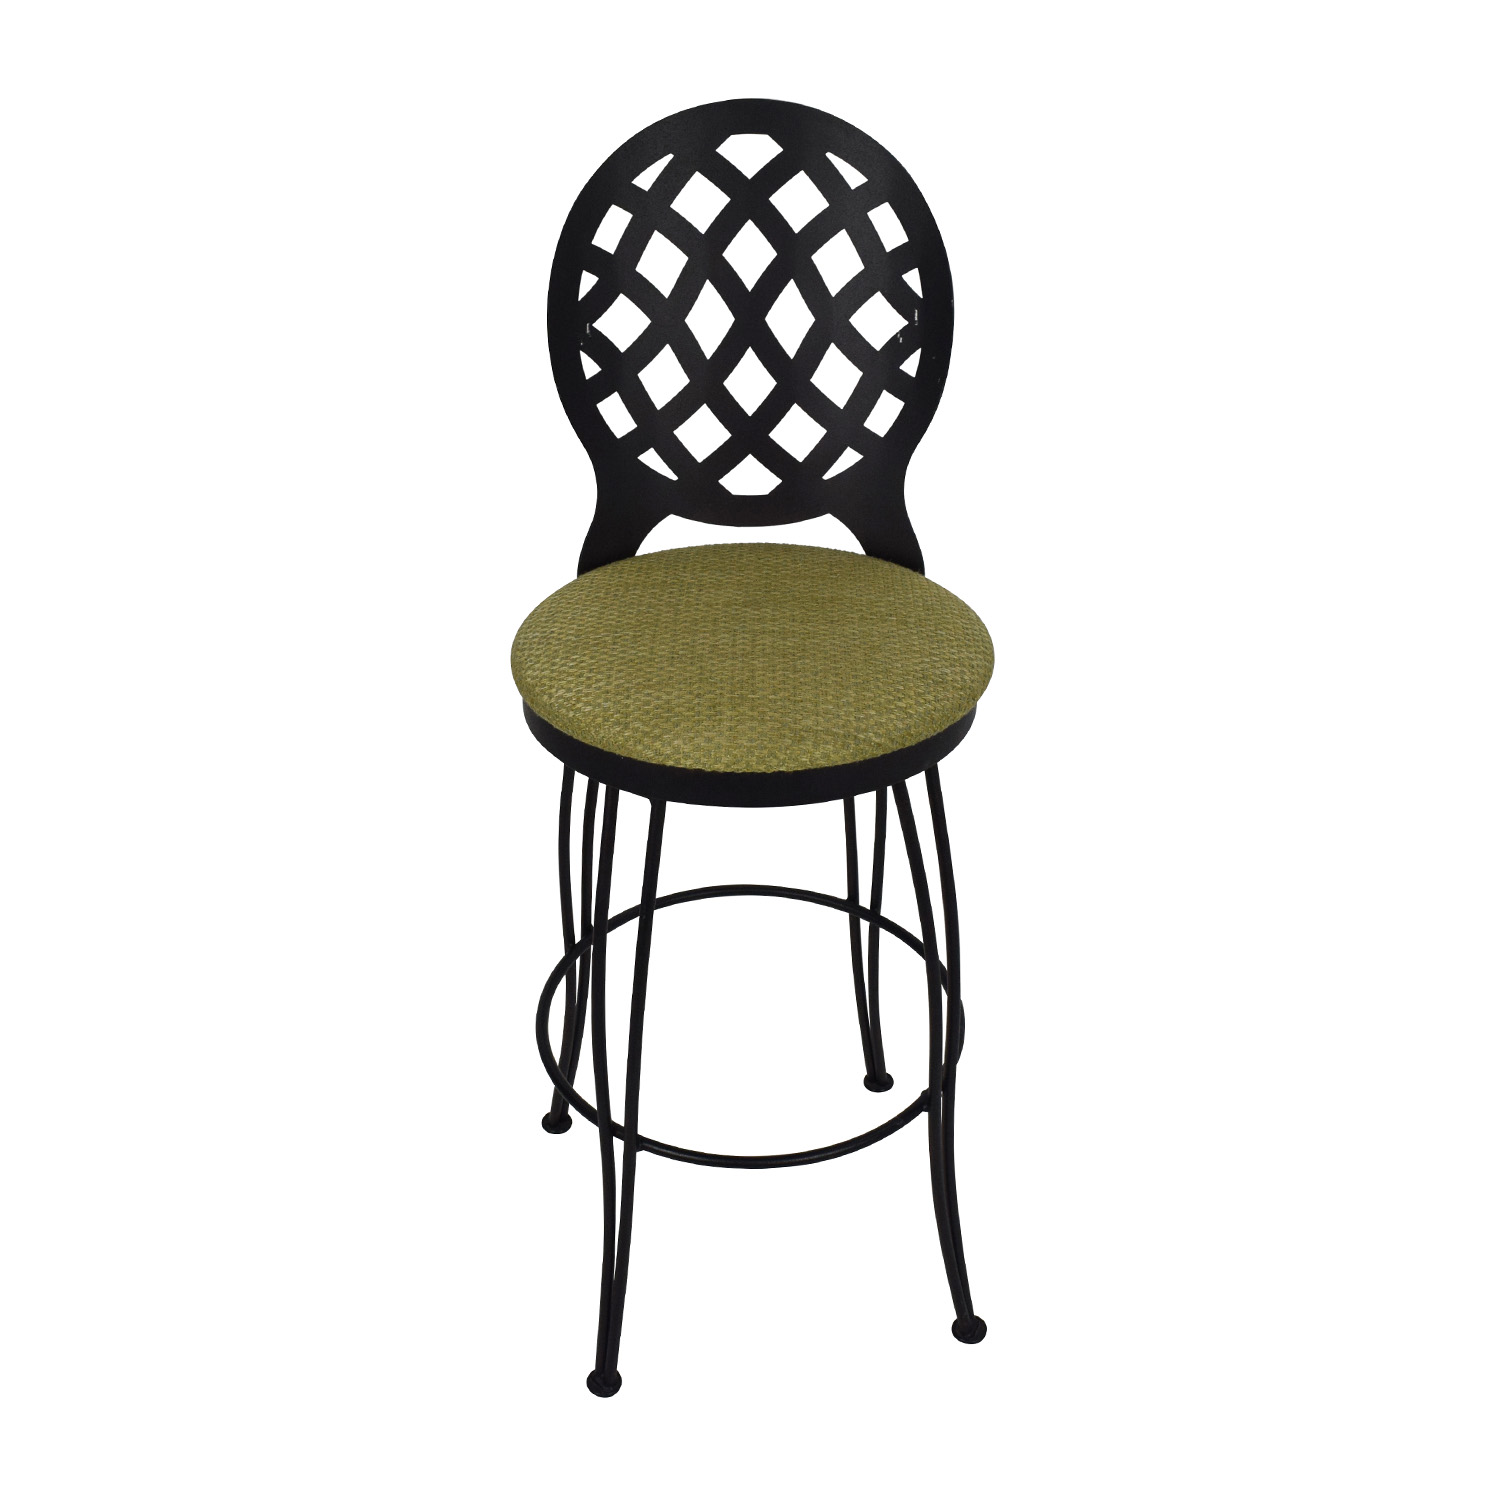 stool chair second hand wood frame beach chairs 90 off trica inc trice swivel bar shop stools